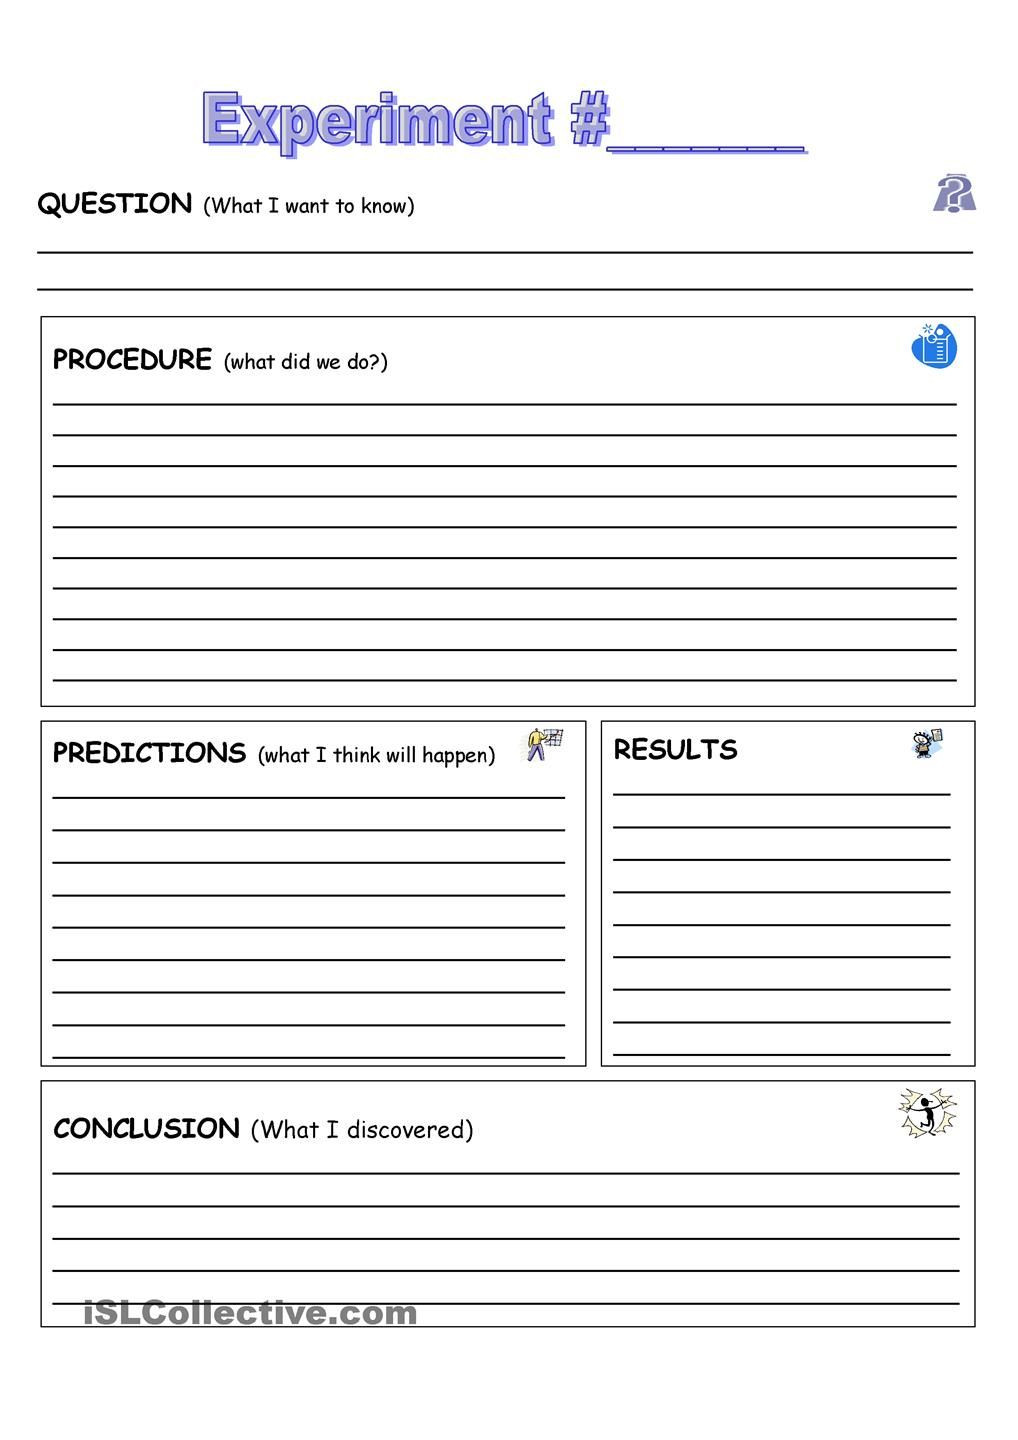 Scientific Method Worksheets 5th Grade Experiment Record Sheet